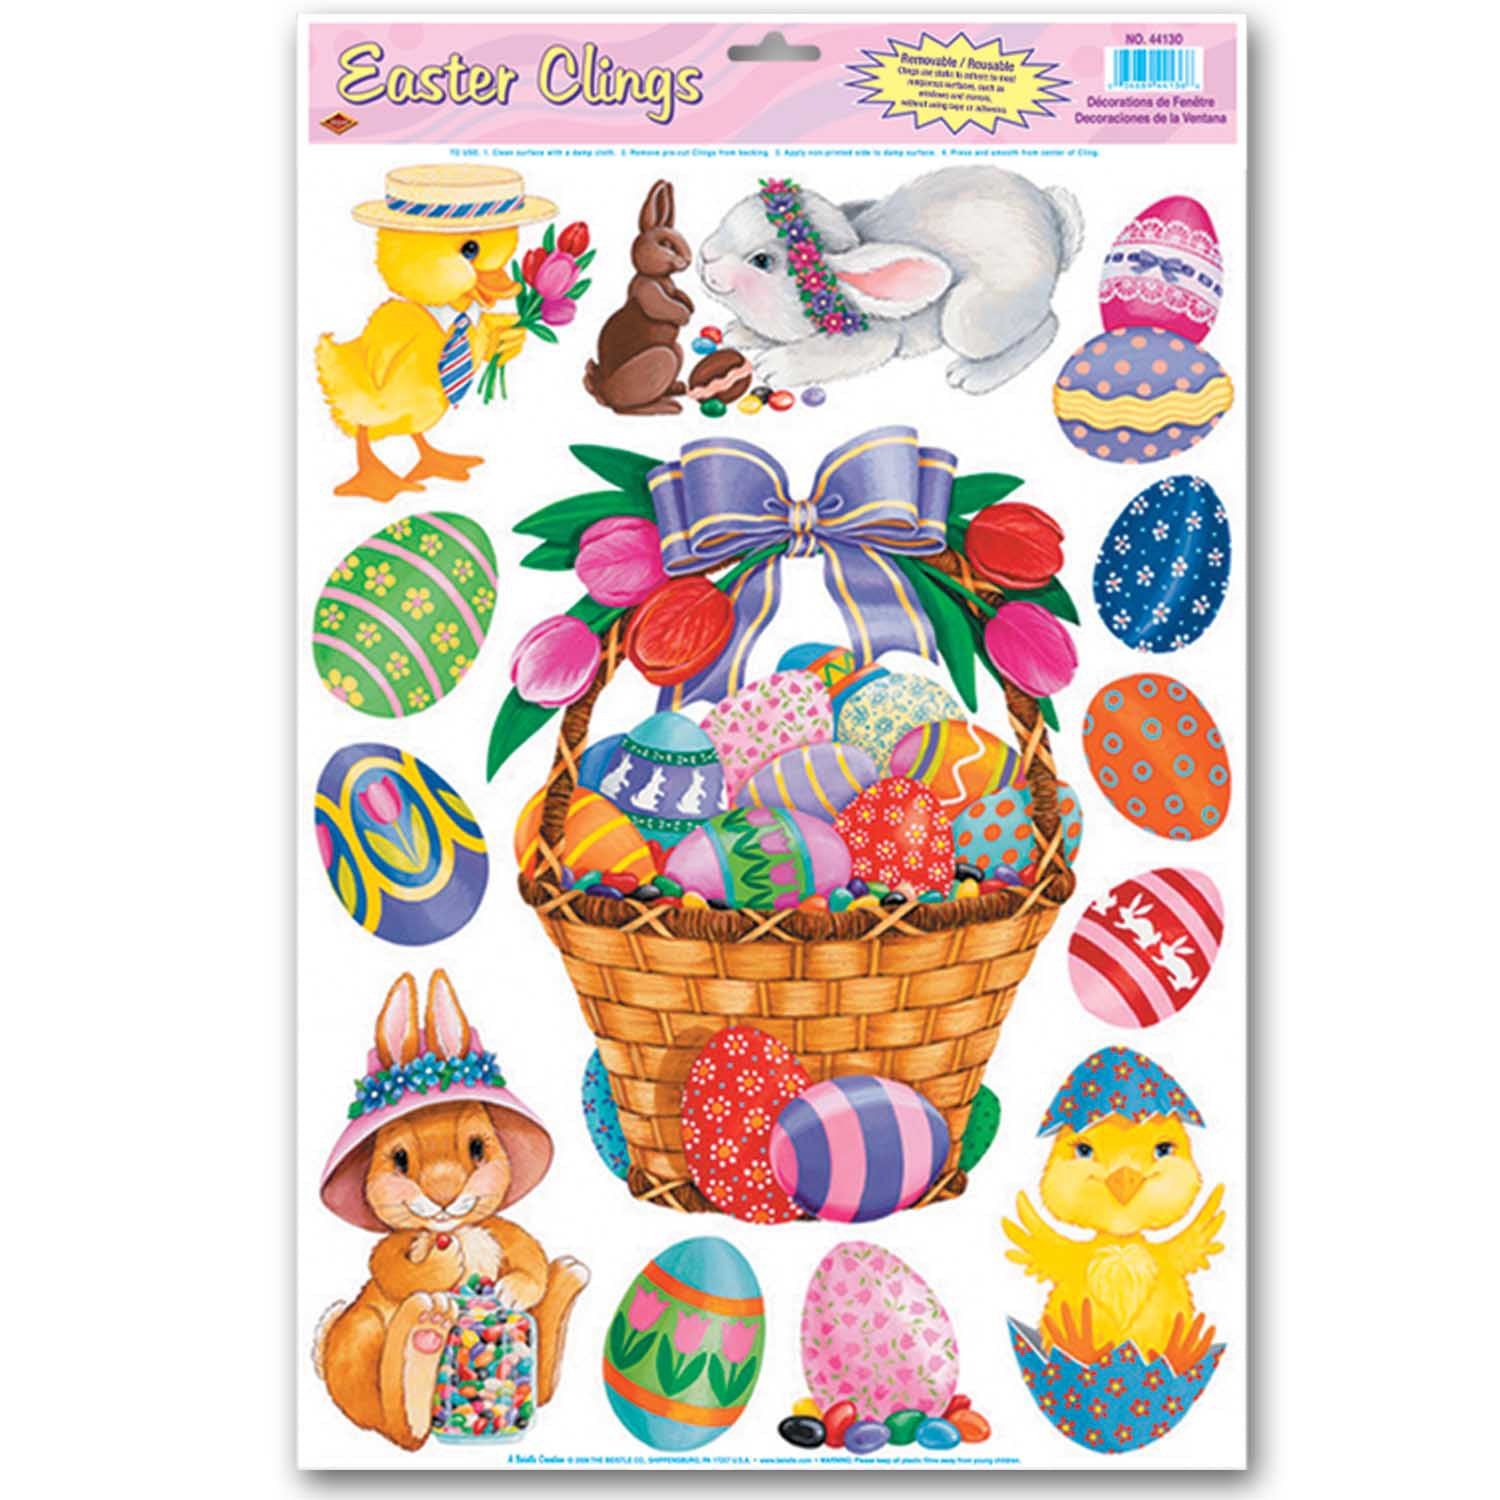 Easter Basket & Friends Clings (5/Sheet) by Beistle - Easter Theme Decorations